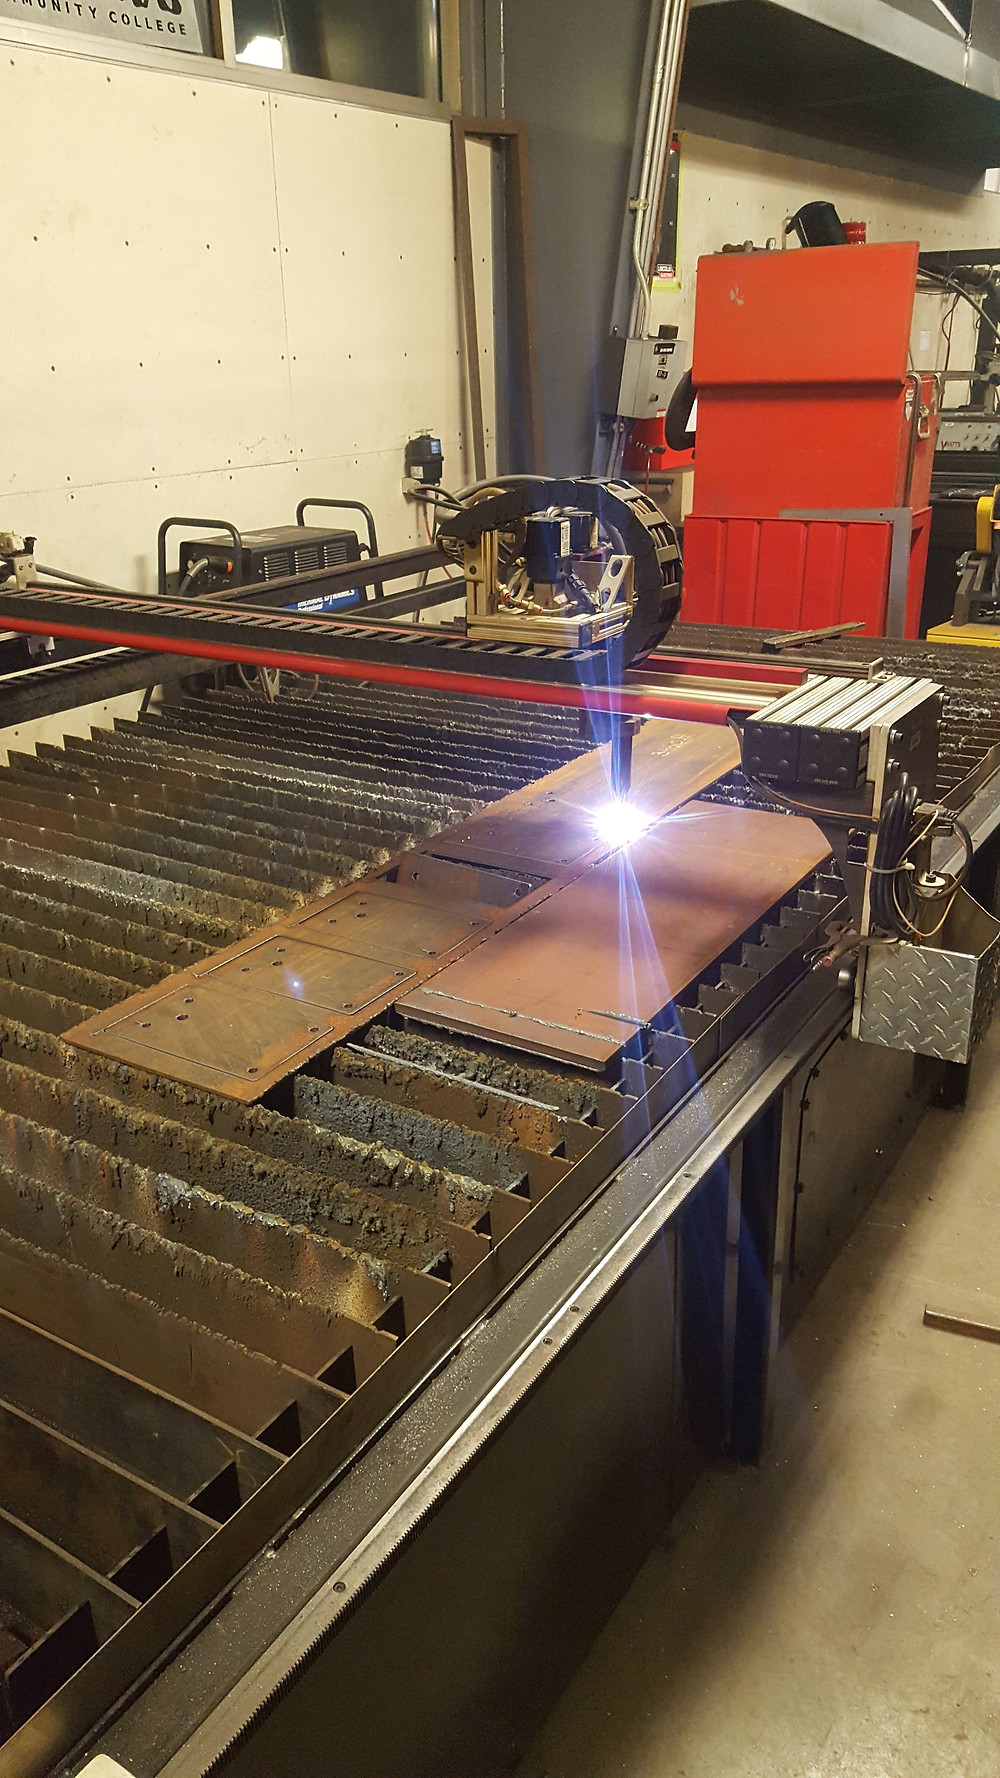 CNC plasma to help cut out my parts